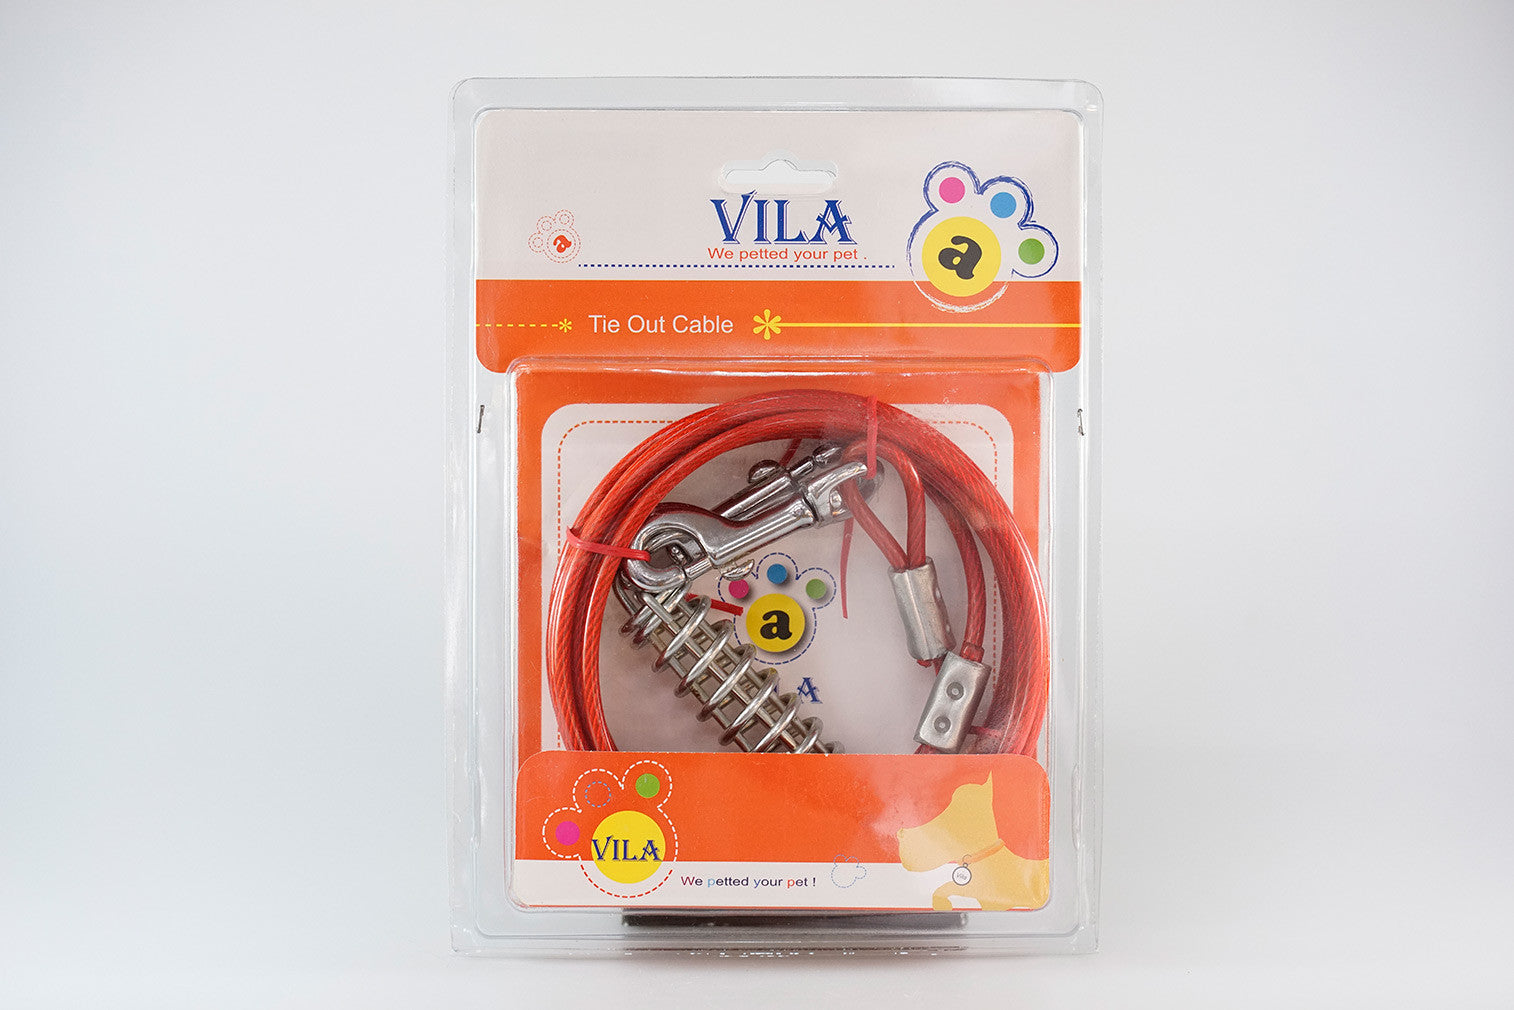 Vila Tie Out Cable